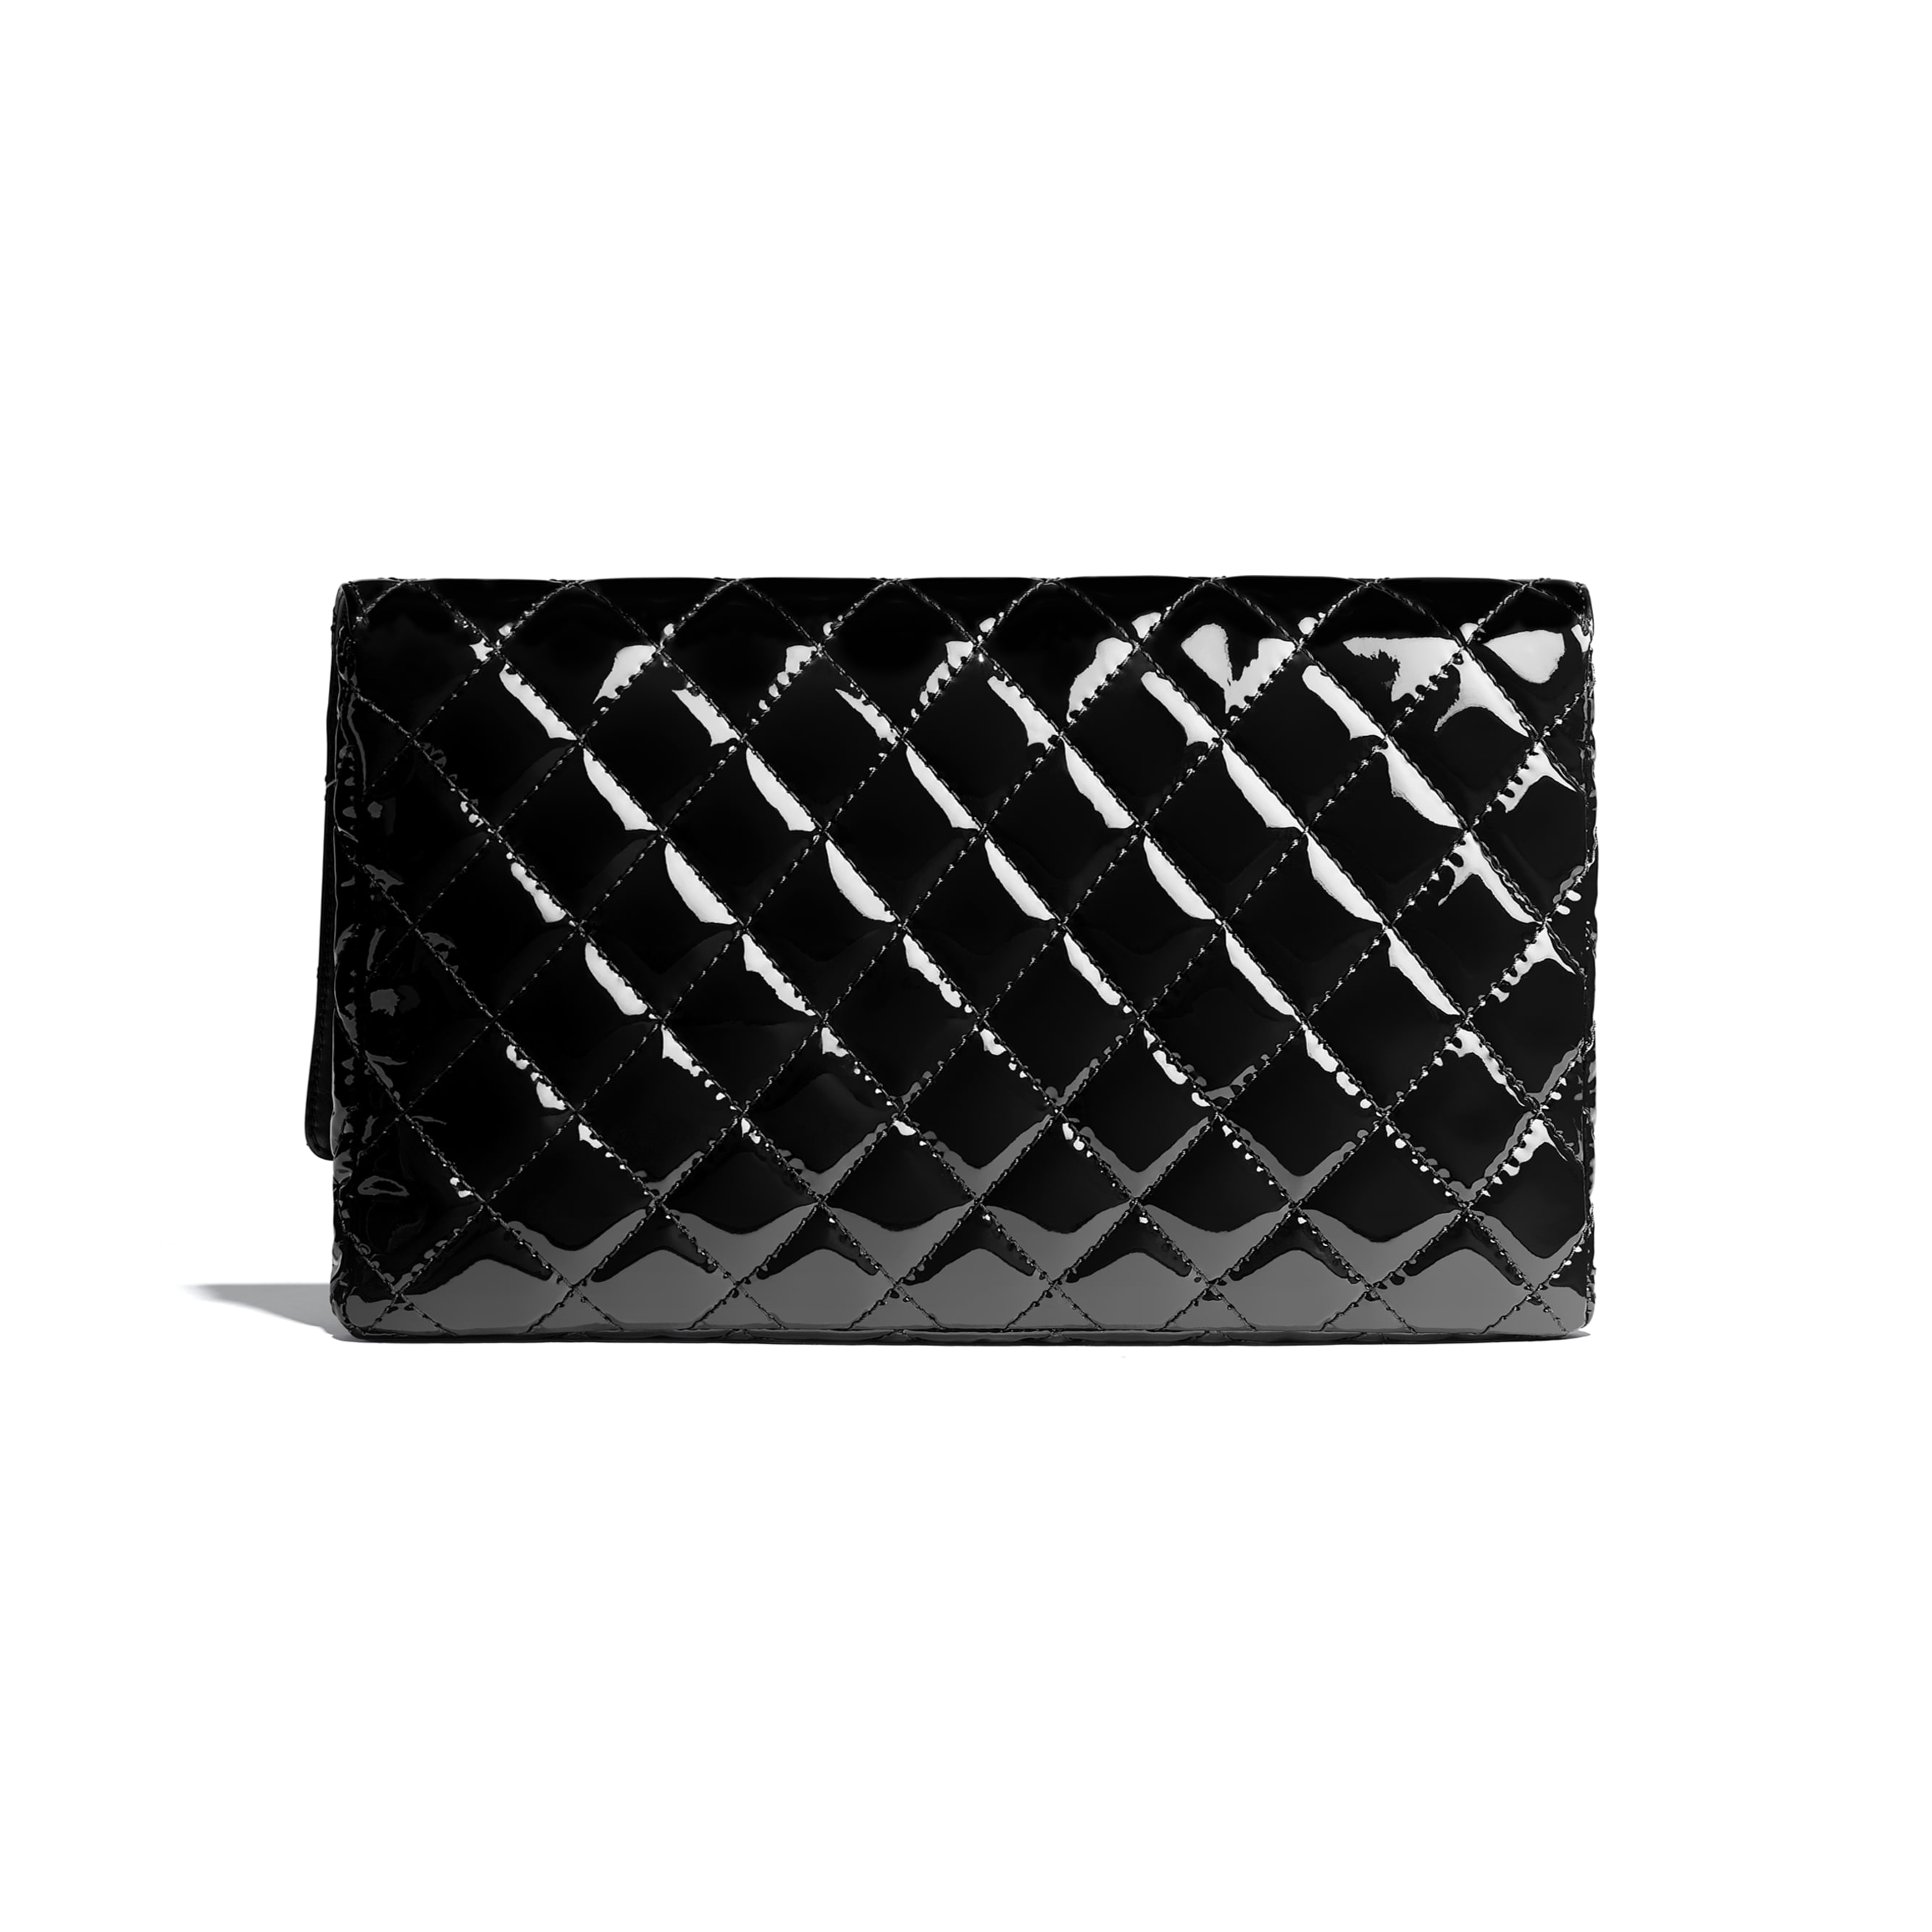 Clutch - Black - Patent Calfskin & Black Metal - Alternative view - see standard sized version